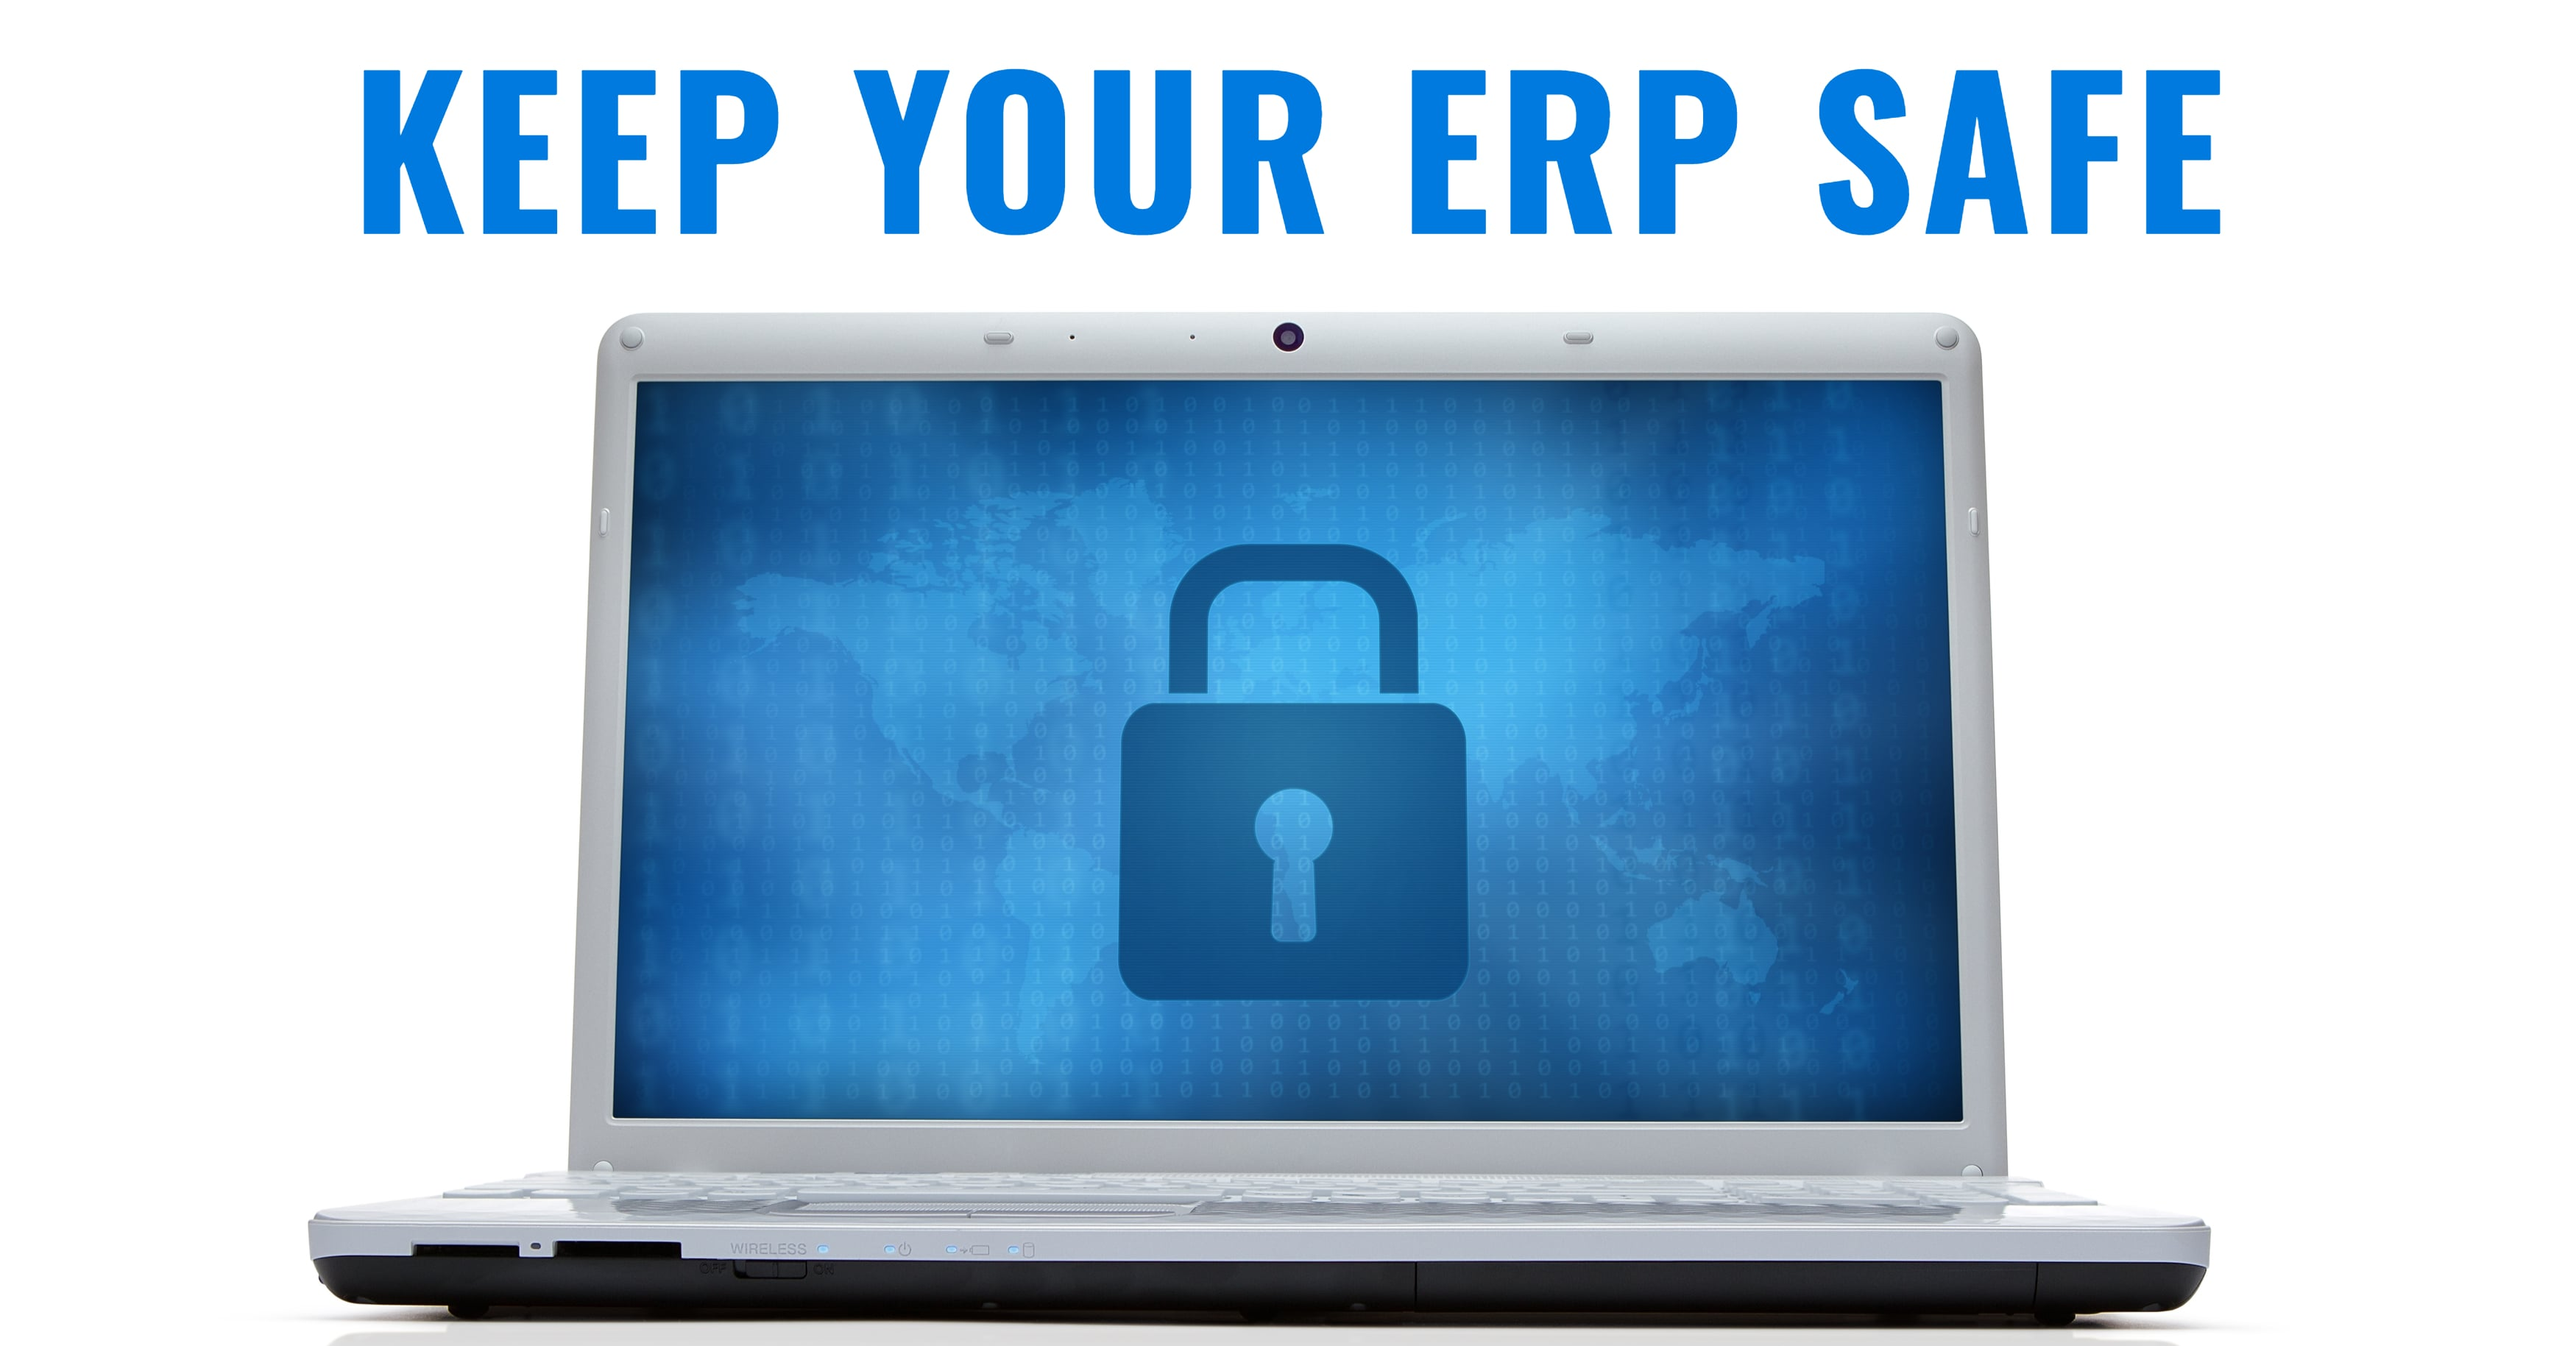 How to Keep Your ERP Safe